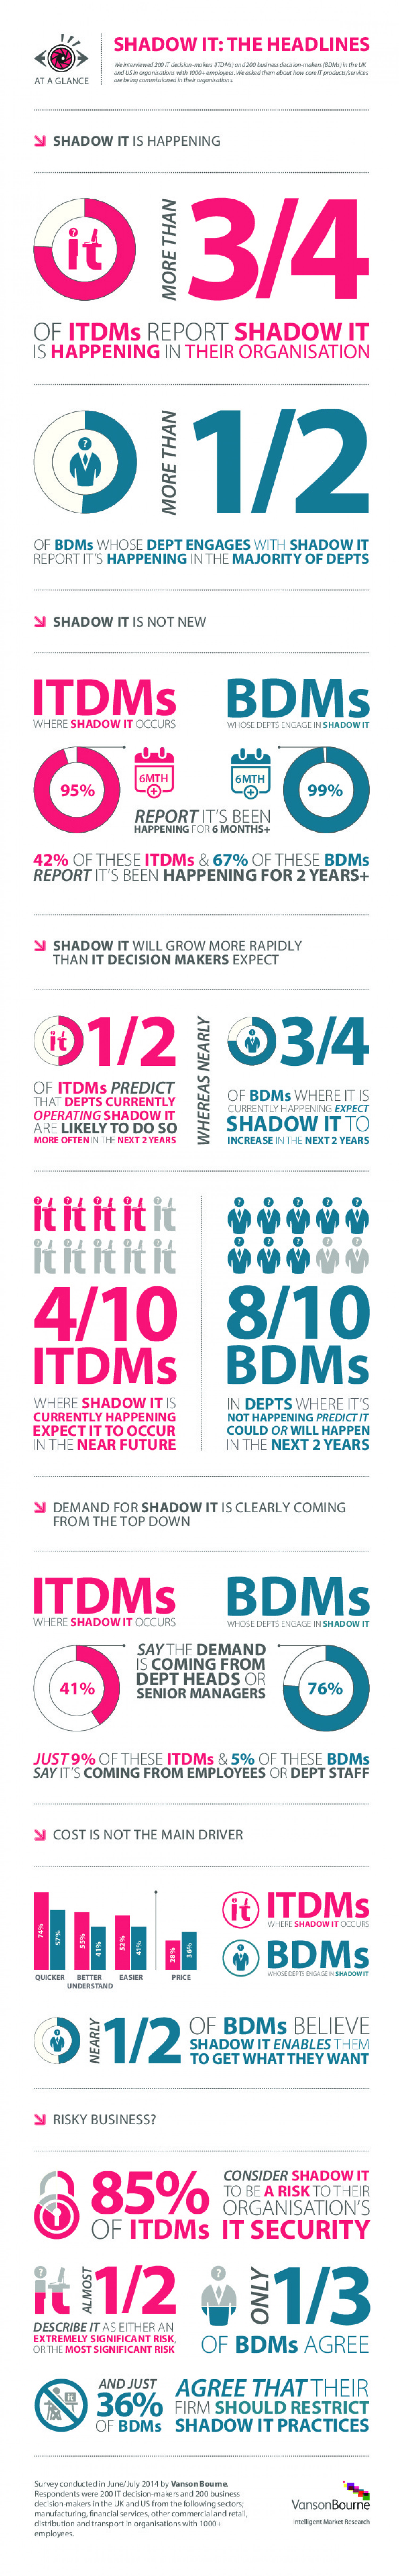 Shadow IT Infographic: Vanson Bourne Infographic